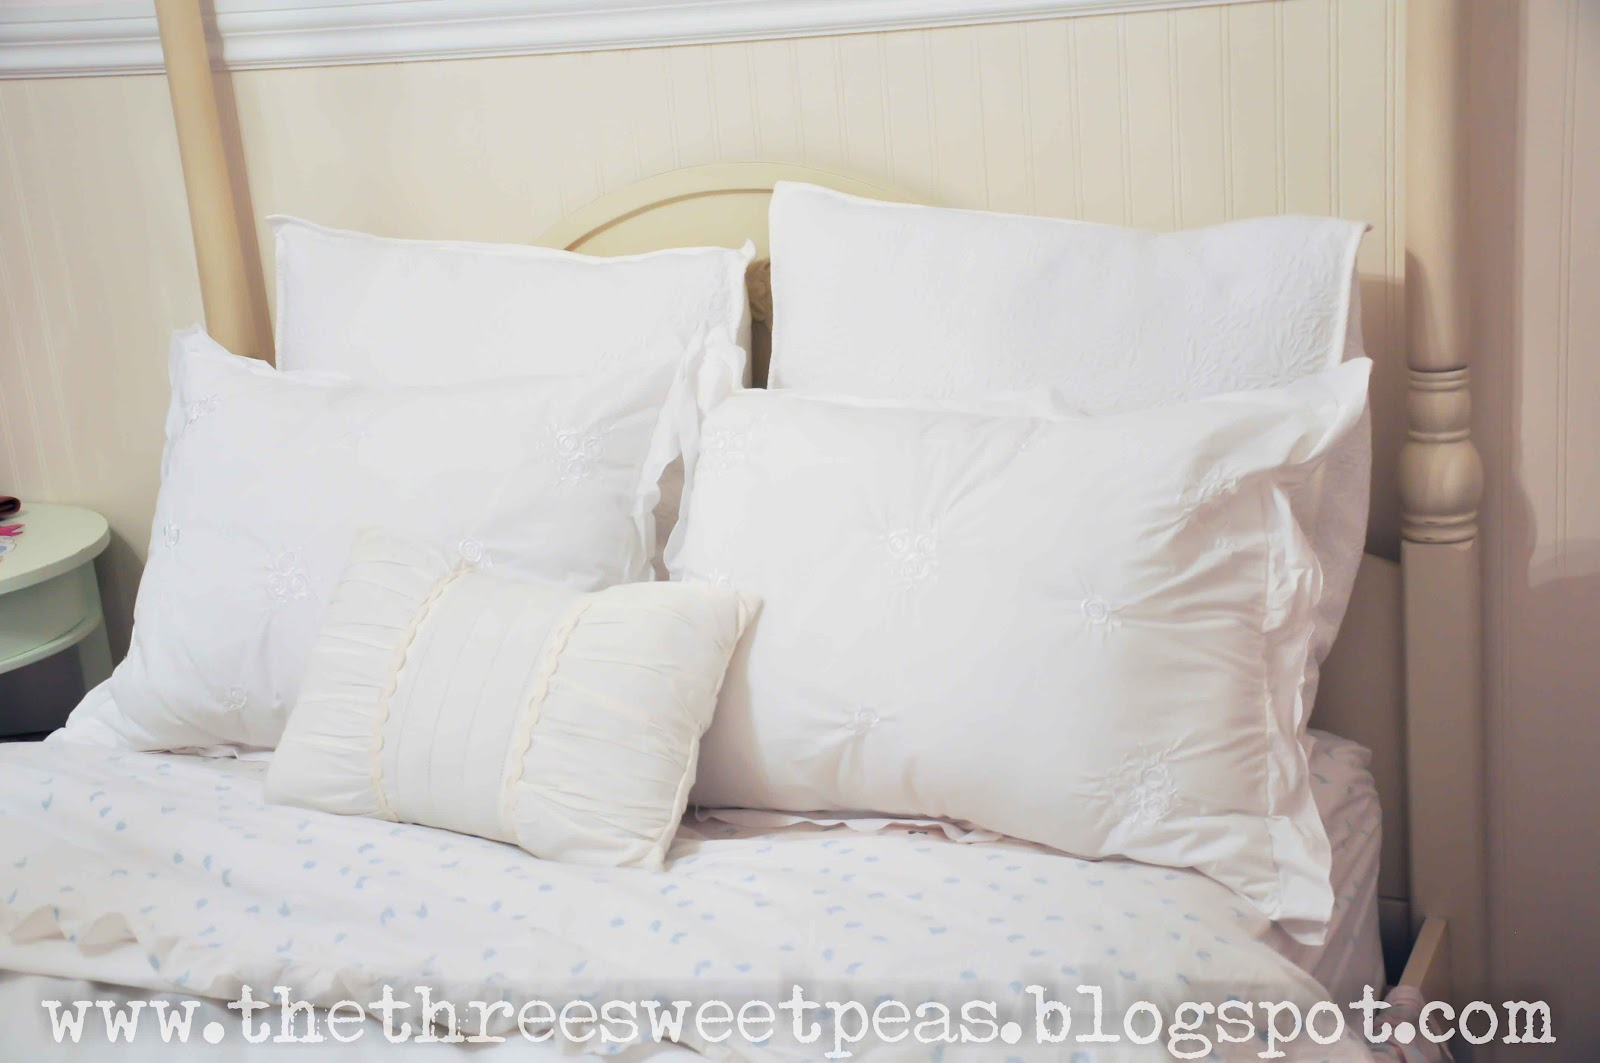 the way the pillows are stuffed are very similar to a down feather pillow minus a lot of the down but by combining two of them you get a very custom looking